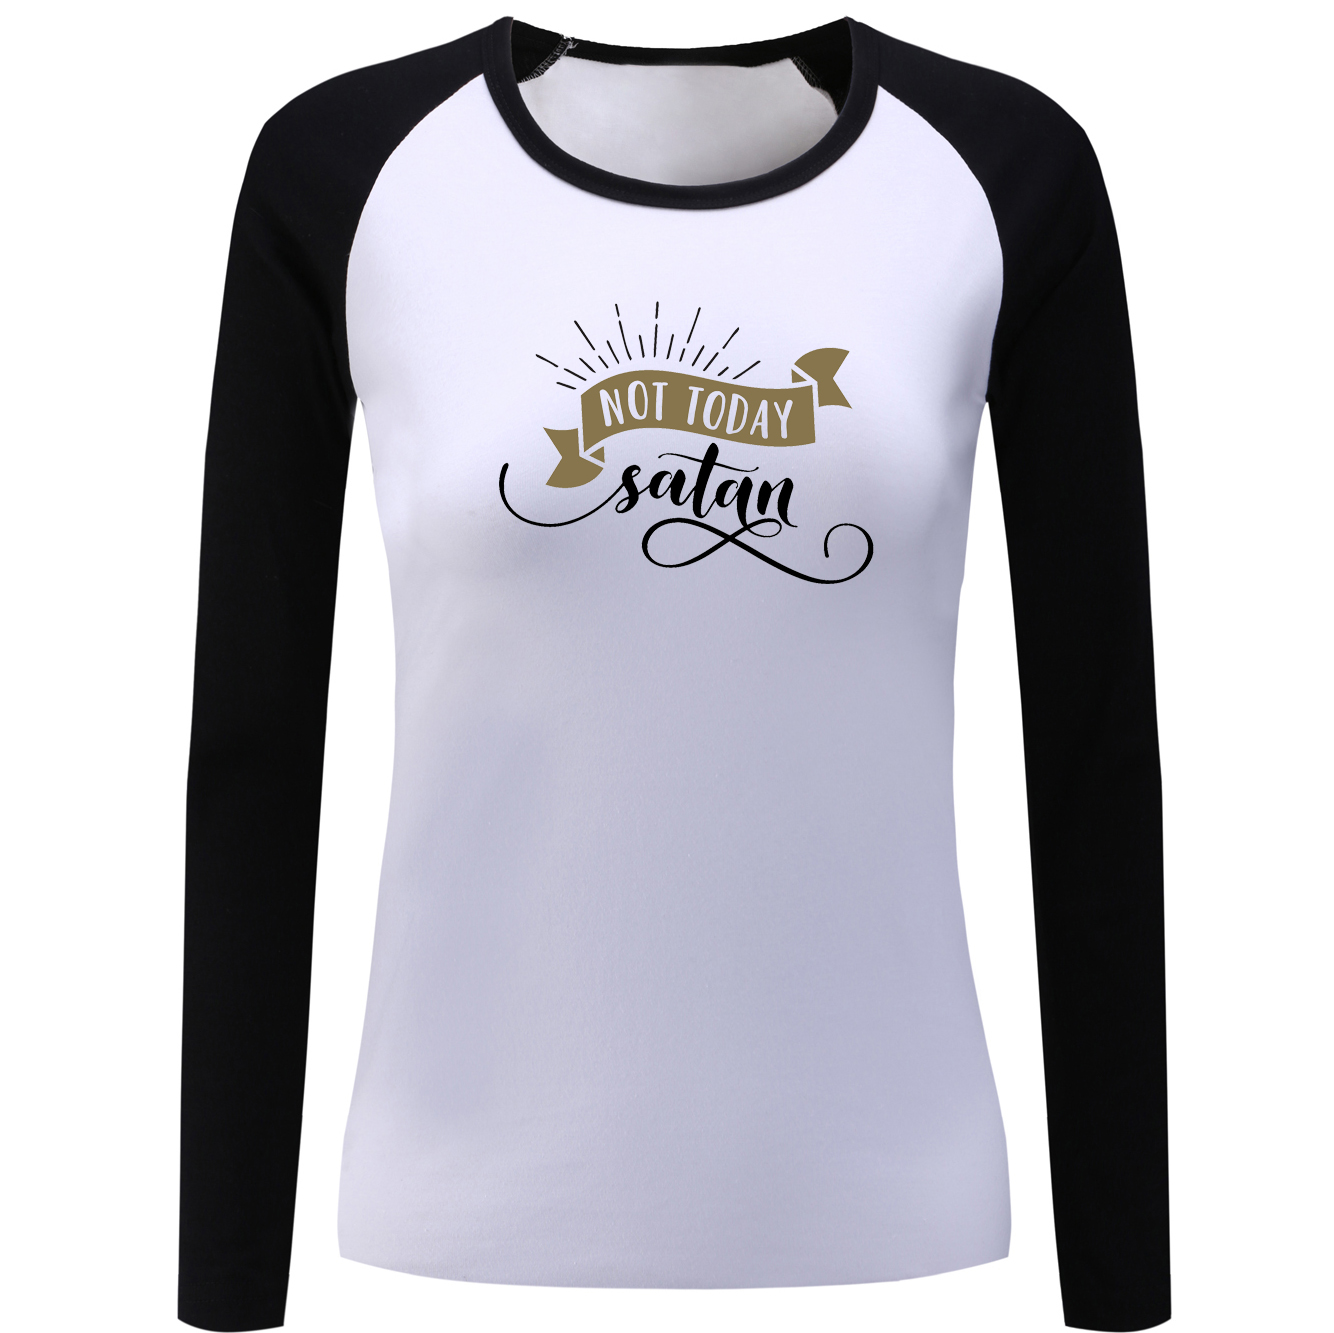 Design t shirt for holiday - Not Today Satan Design Long Sleeve T Shirt Women Girl Lady Patchwork Tshirt Fashion T Shirt Holiday Tee Casual Cotton Loose Tops